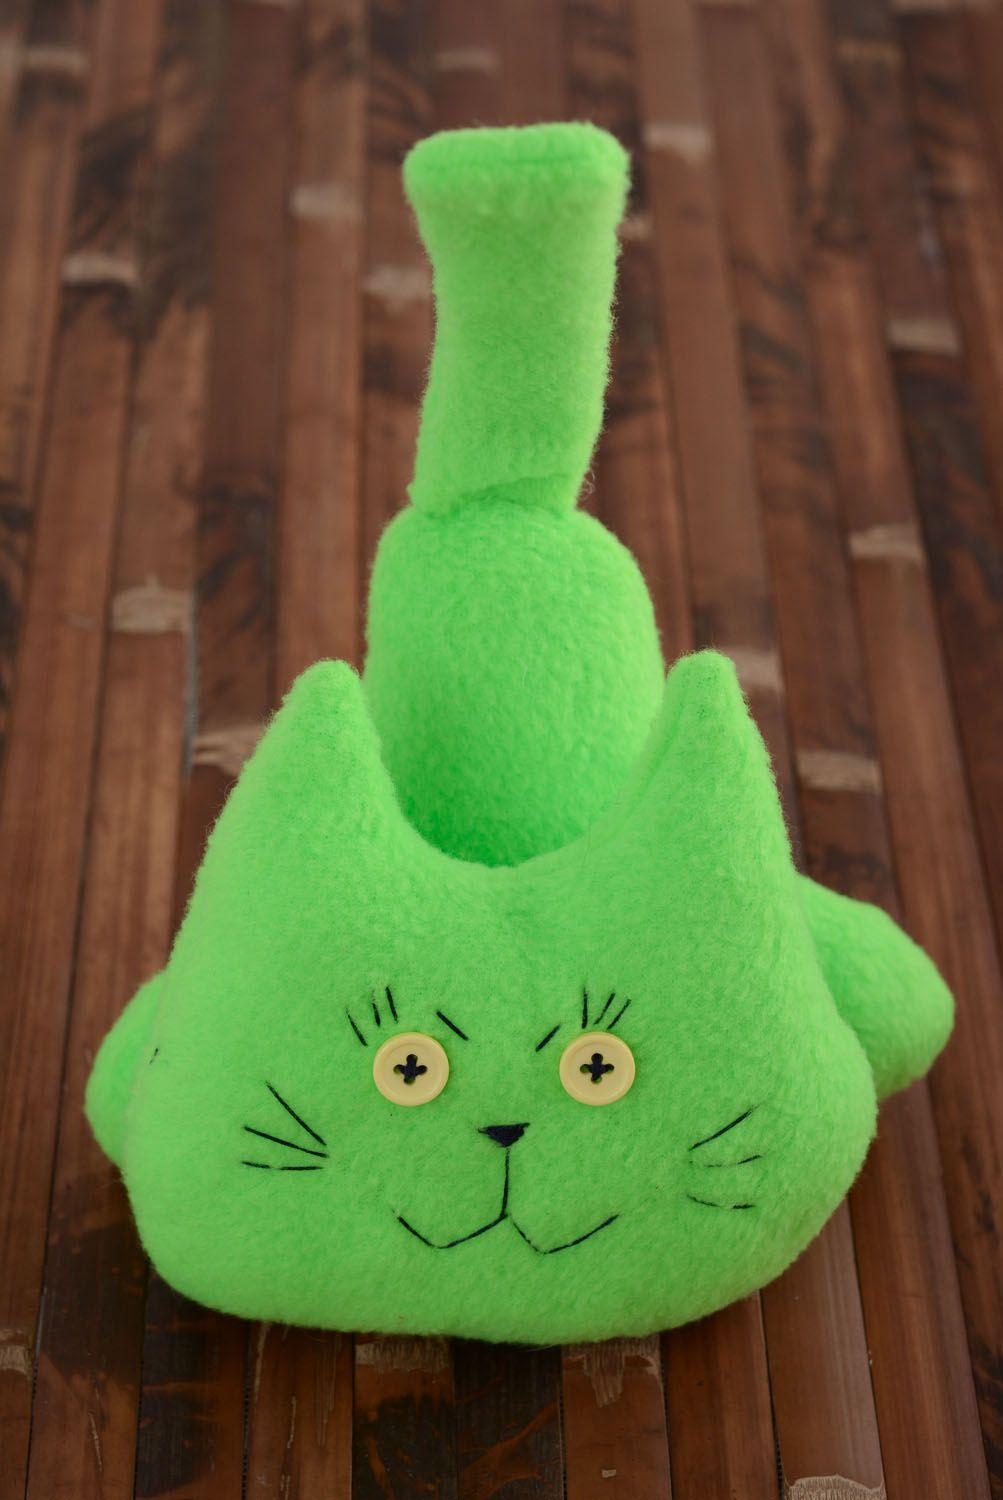 Soft toy in the shape of a green cat photo 5